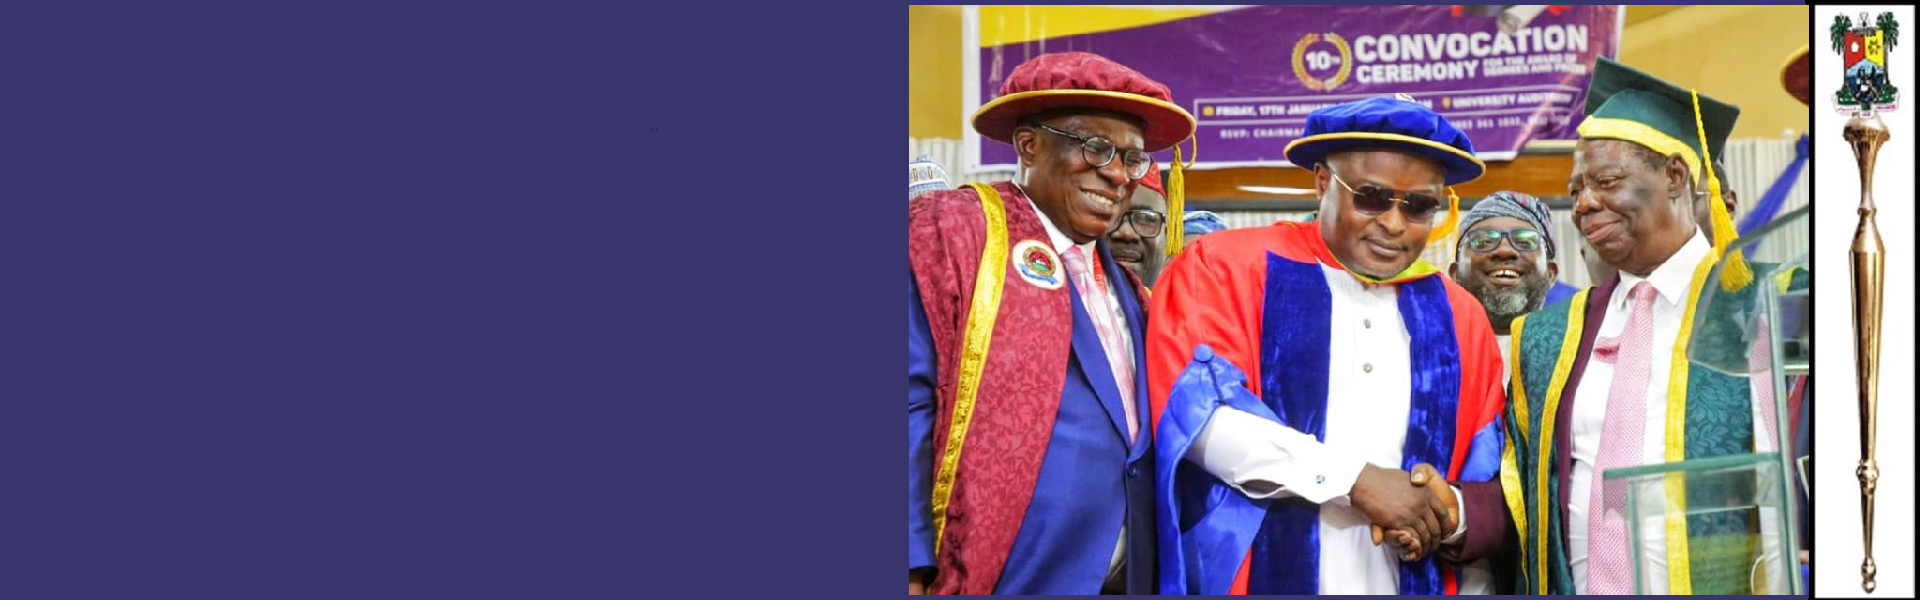 Rt. Hon. Mudashiru Ajayi Obasa, Speaker, Lagos House of Assembly and Chairman Conference of Speakers of State Legislature honoured with Doctor of Philosophy in Political Science( Honoris Causa).